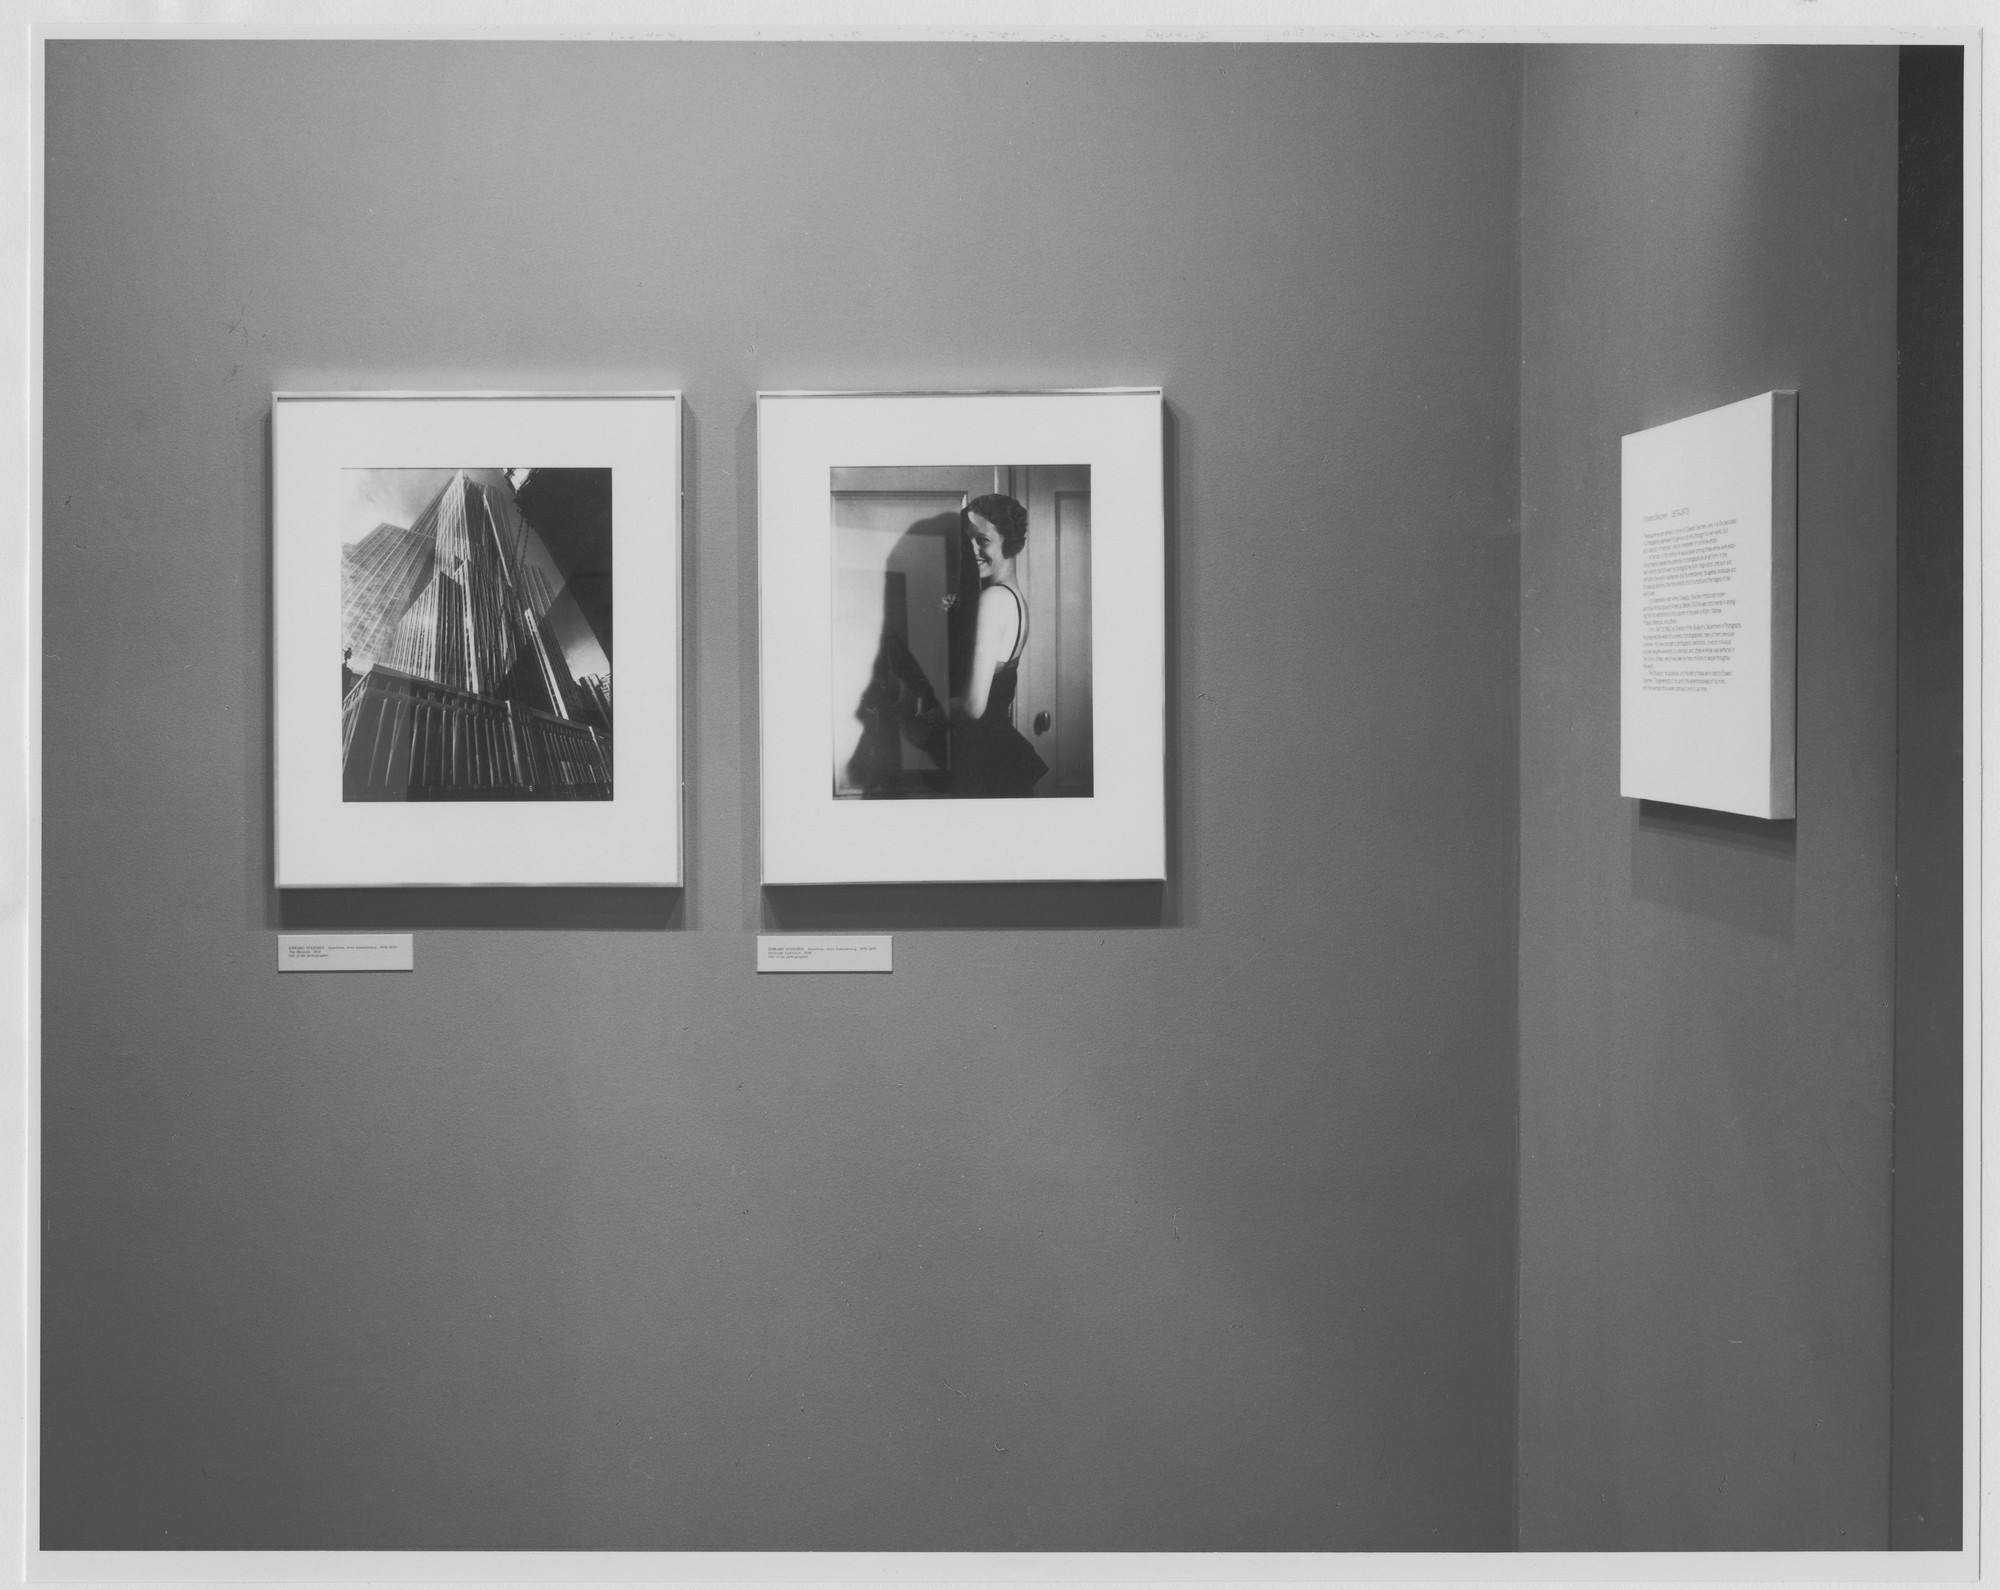 "Installation view of the exhibition, ""Edward Steichen Photography Center Reinstallation"" December 21, 1979 [unknown closing date]. Photographic Archive. The Museum of Modern Art Archives, New York. IN1281a.1. Photograph by Katherine Keller."